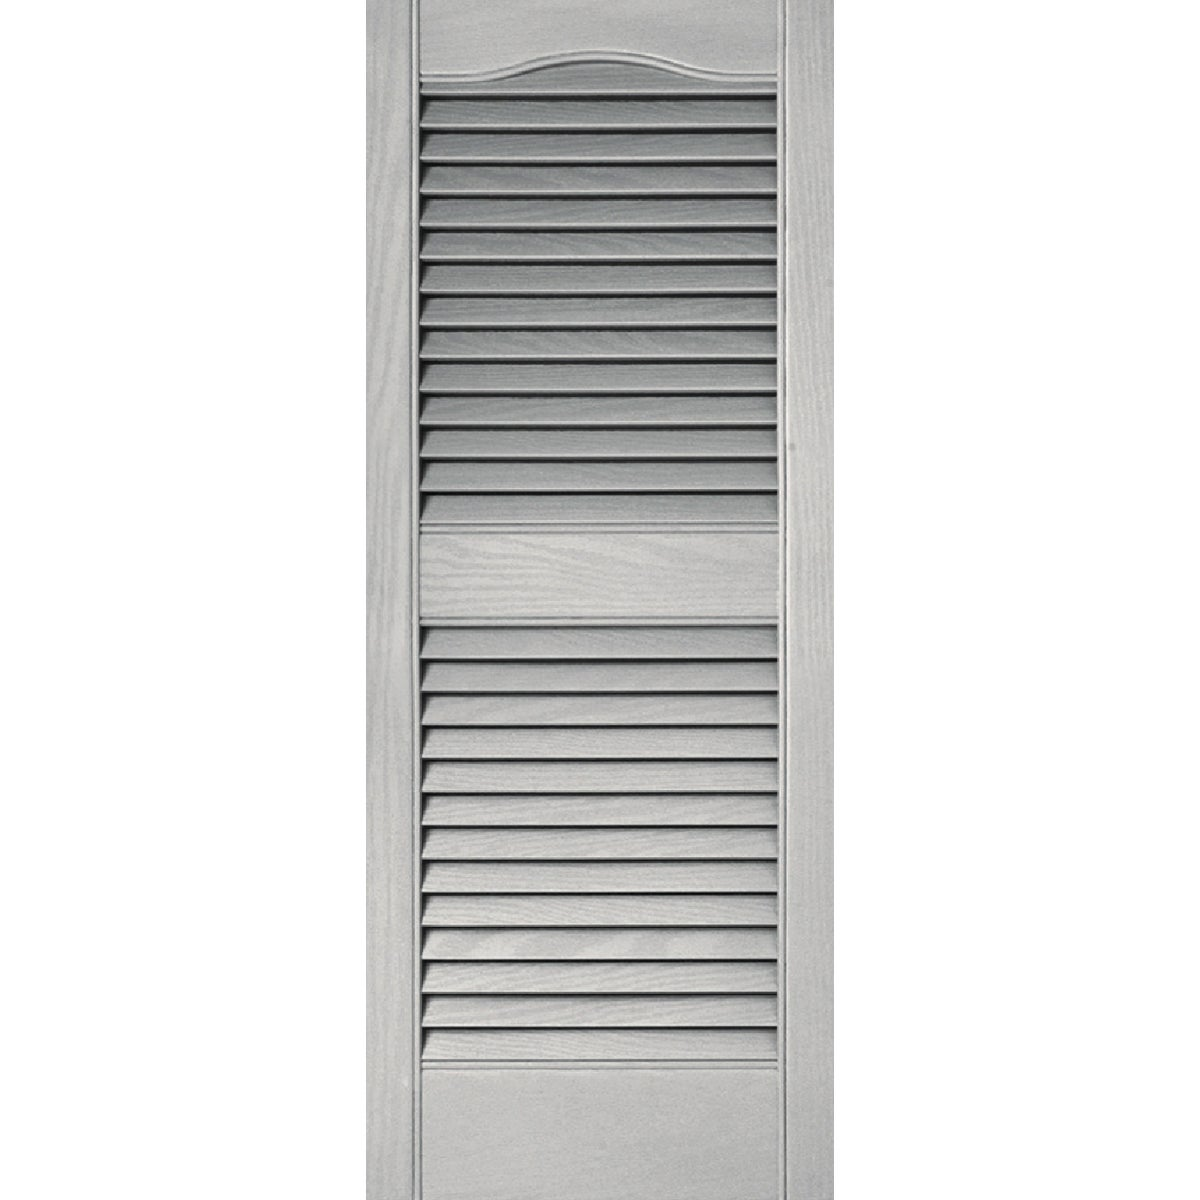 15X36 PBL LOUVER SHUTTER - 020140036030 by The Tapco Group